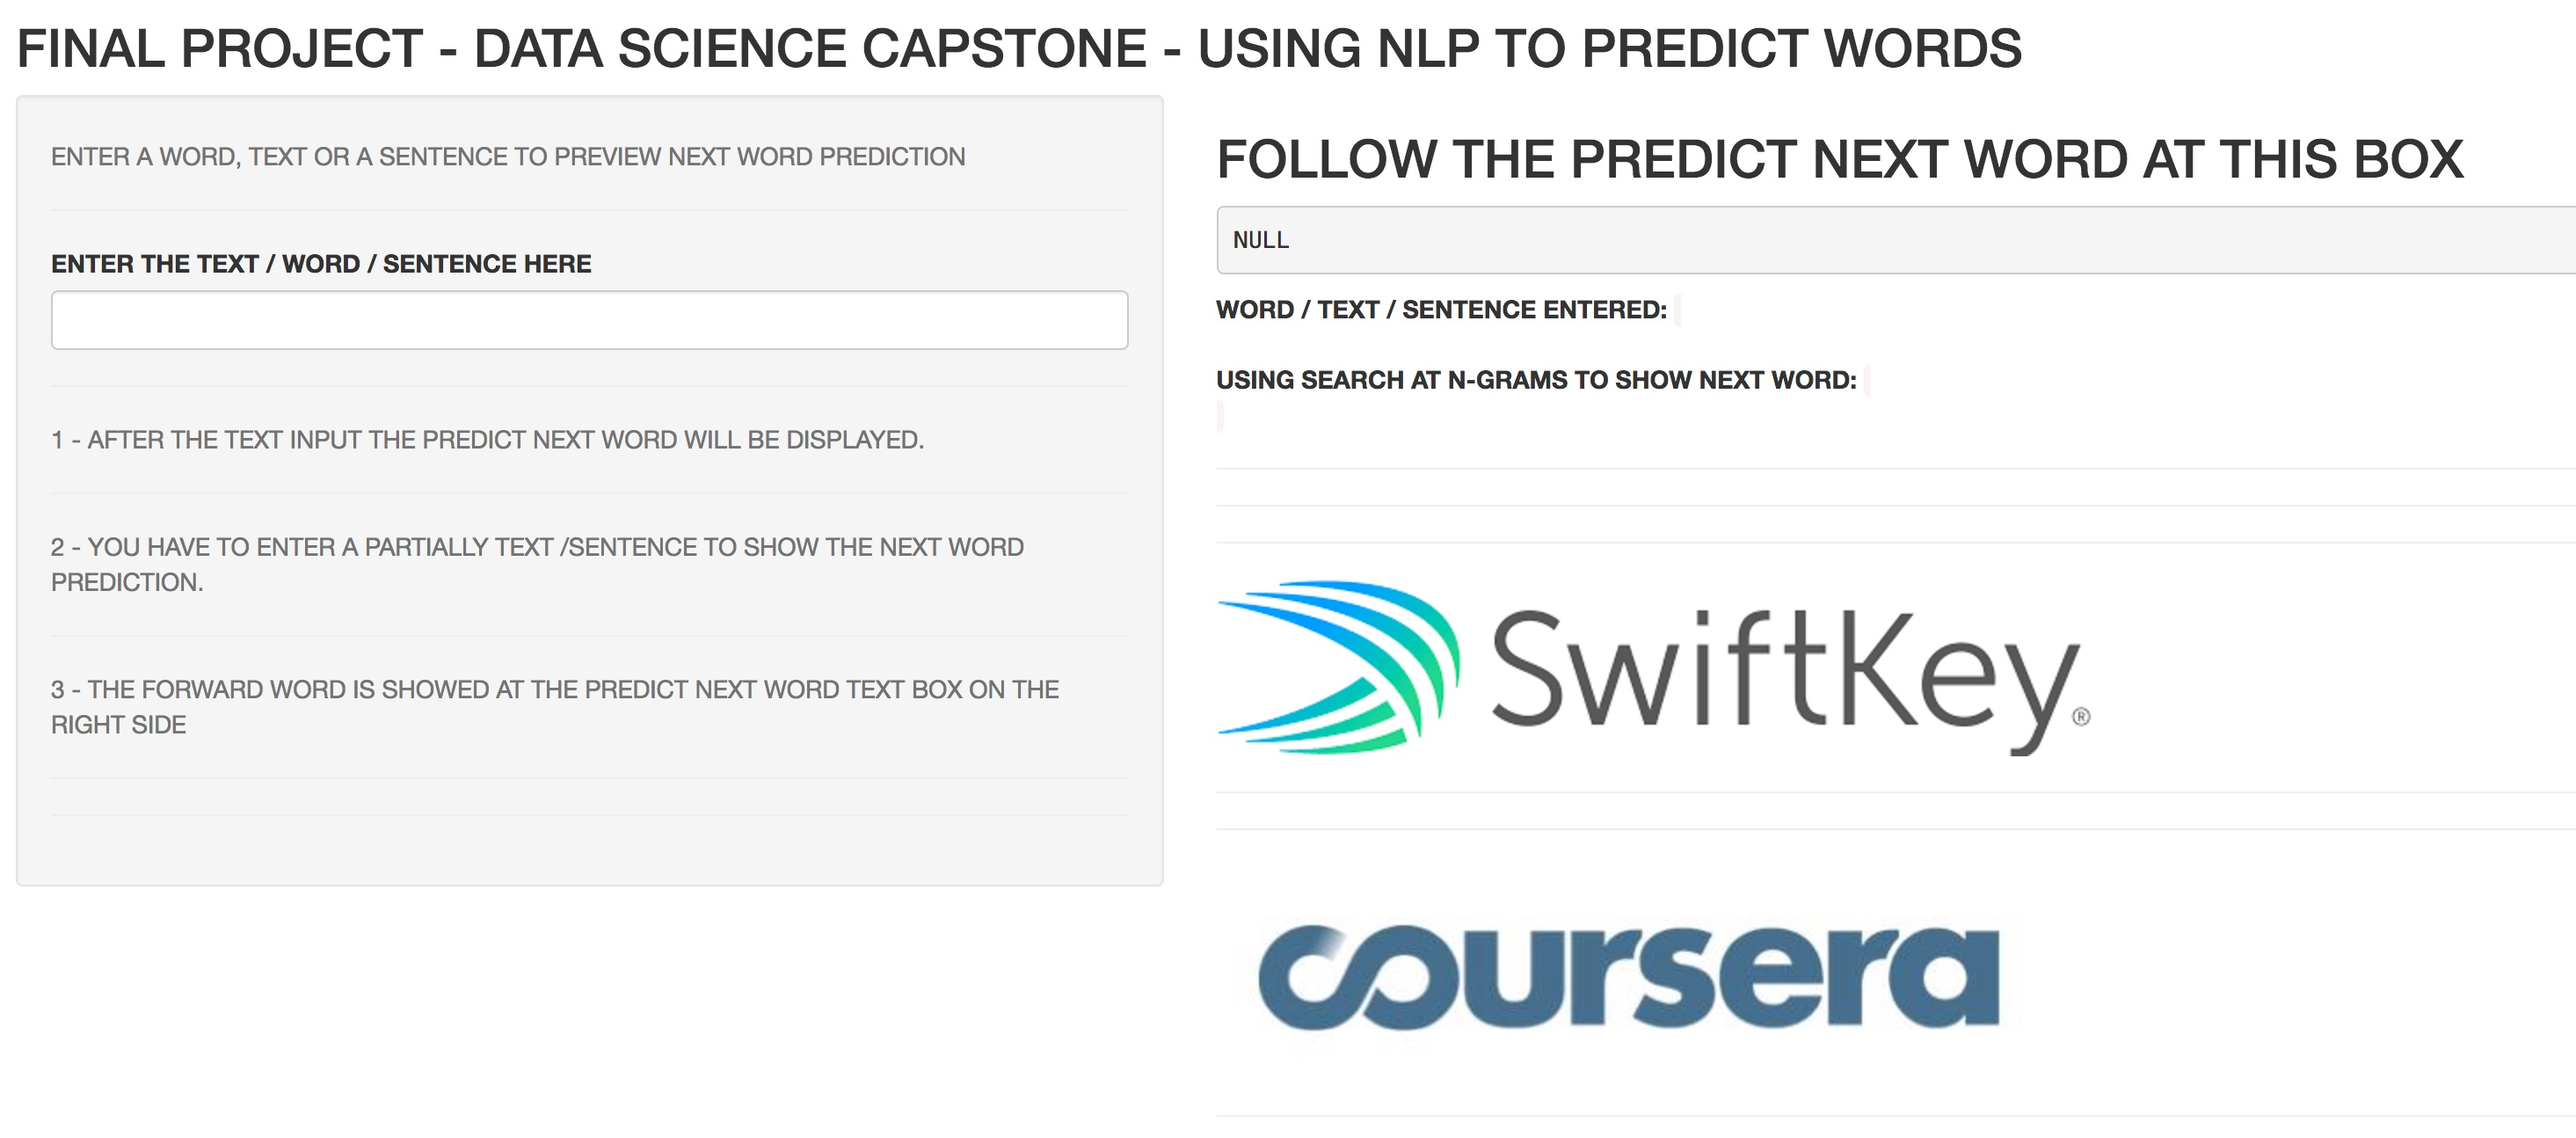 capstone project data science coursera github